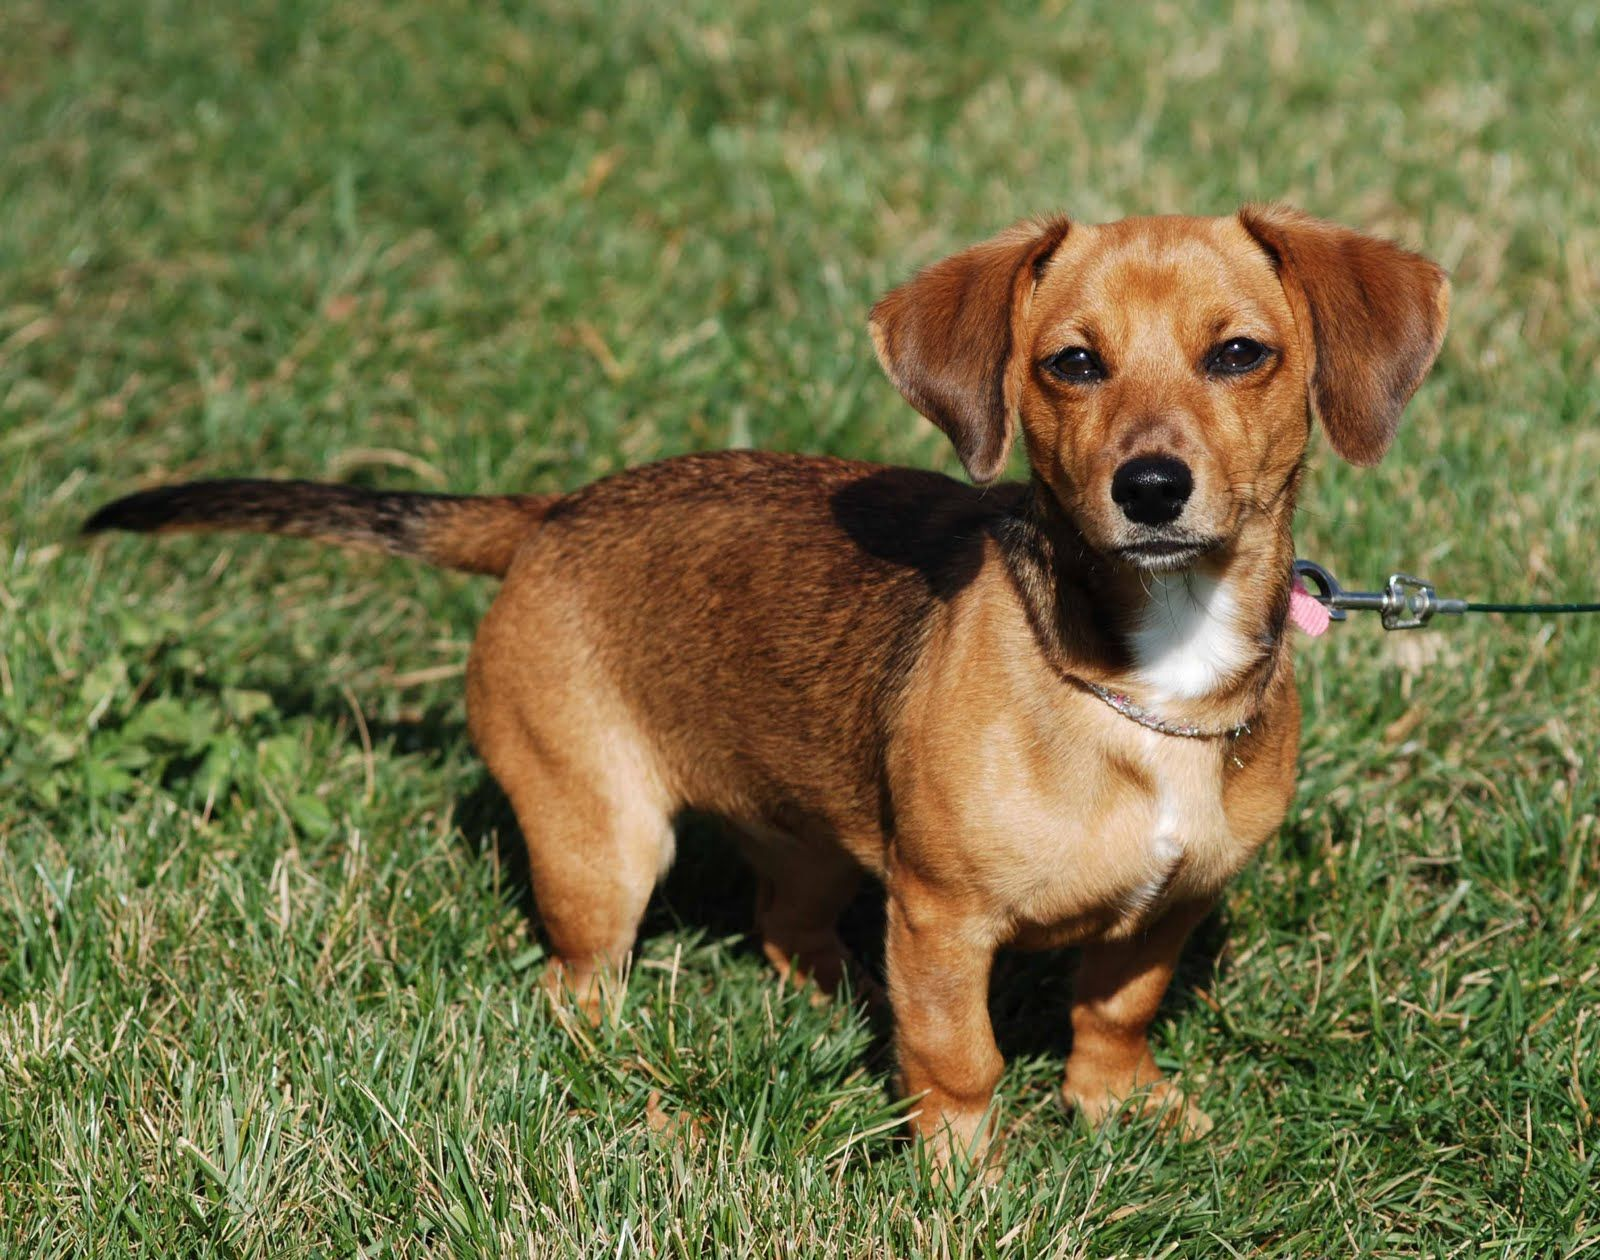 Pics photos dachshund chihuahua dog mix dogs pictures photos pics - Chiweenie Chiweenie Is A Cross Between Chihuahua And A Dachshund Most Chiweenie